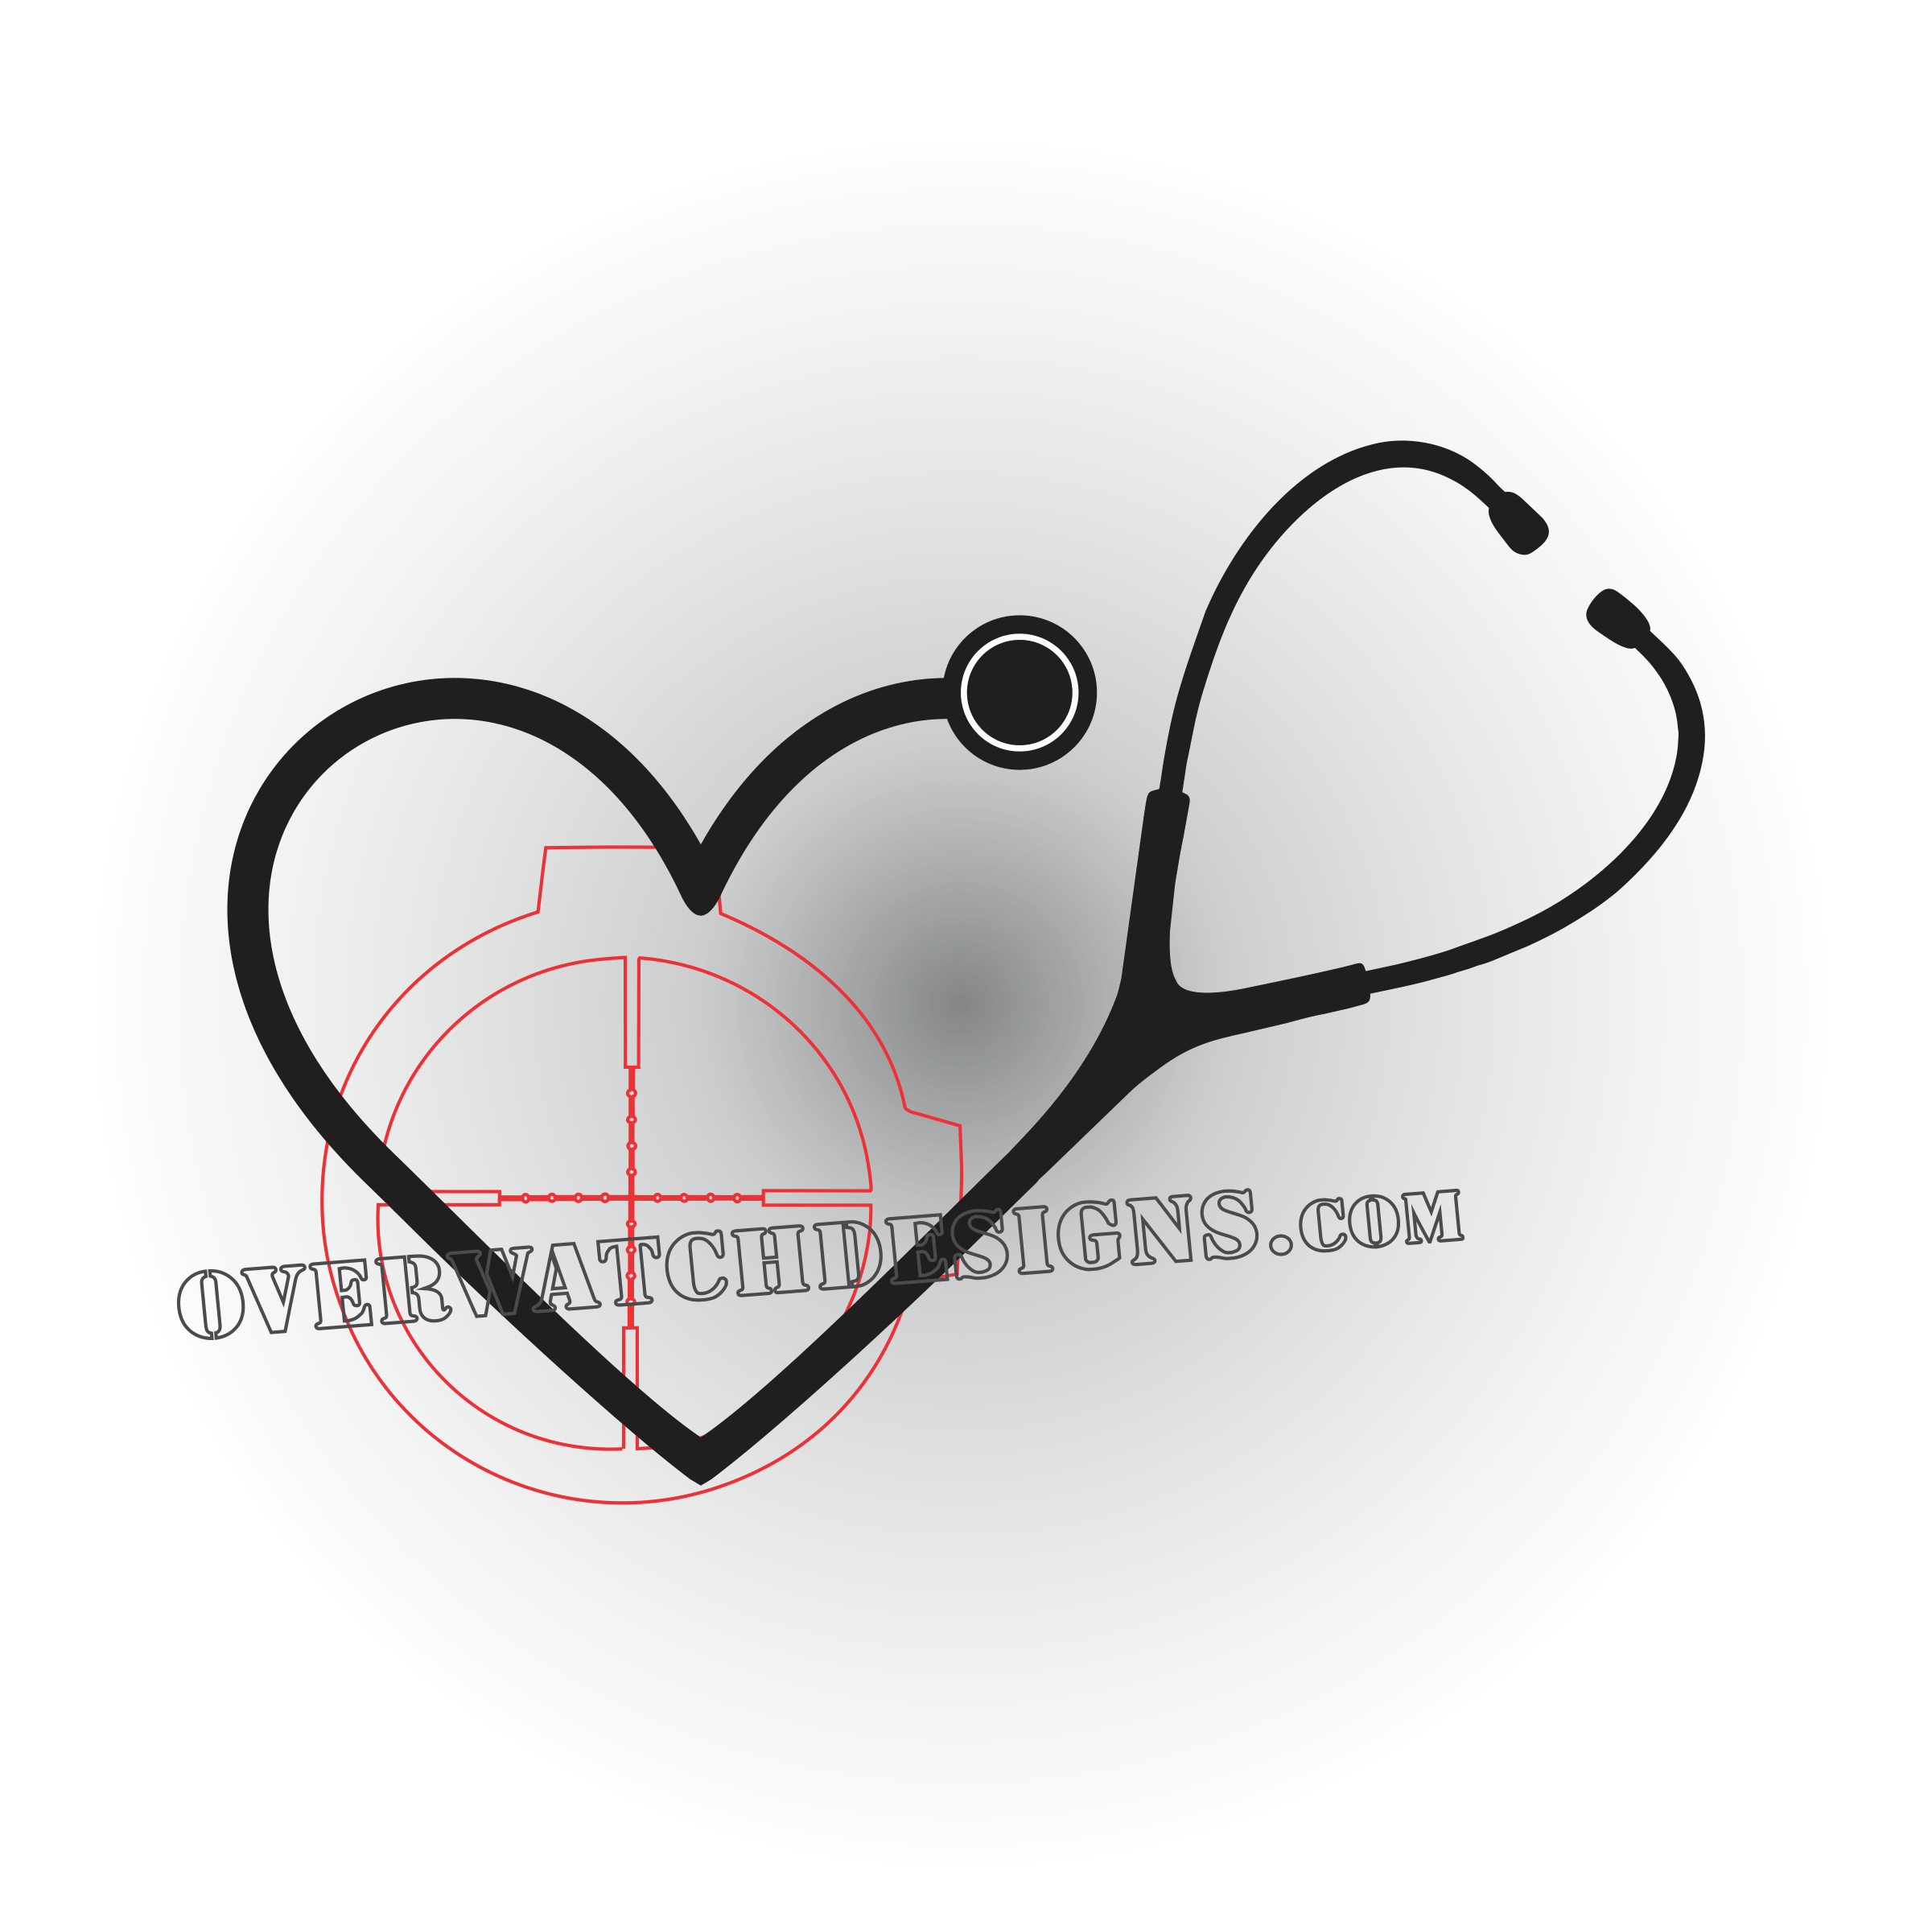 Heart stethoscope clipart black and white svg black and white download Stethoscope Decal - Overwatch Designs svg black and white download